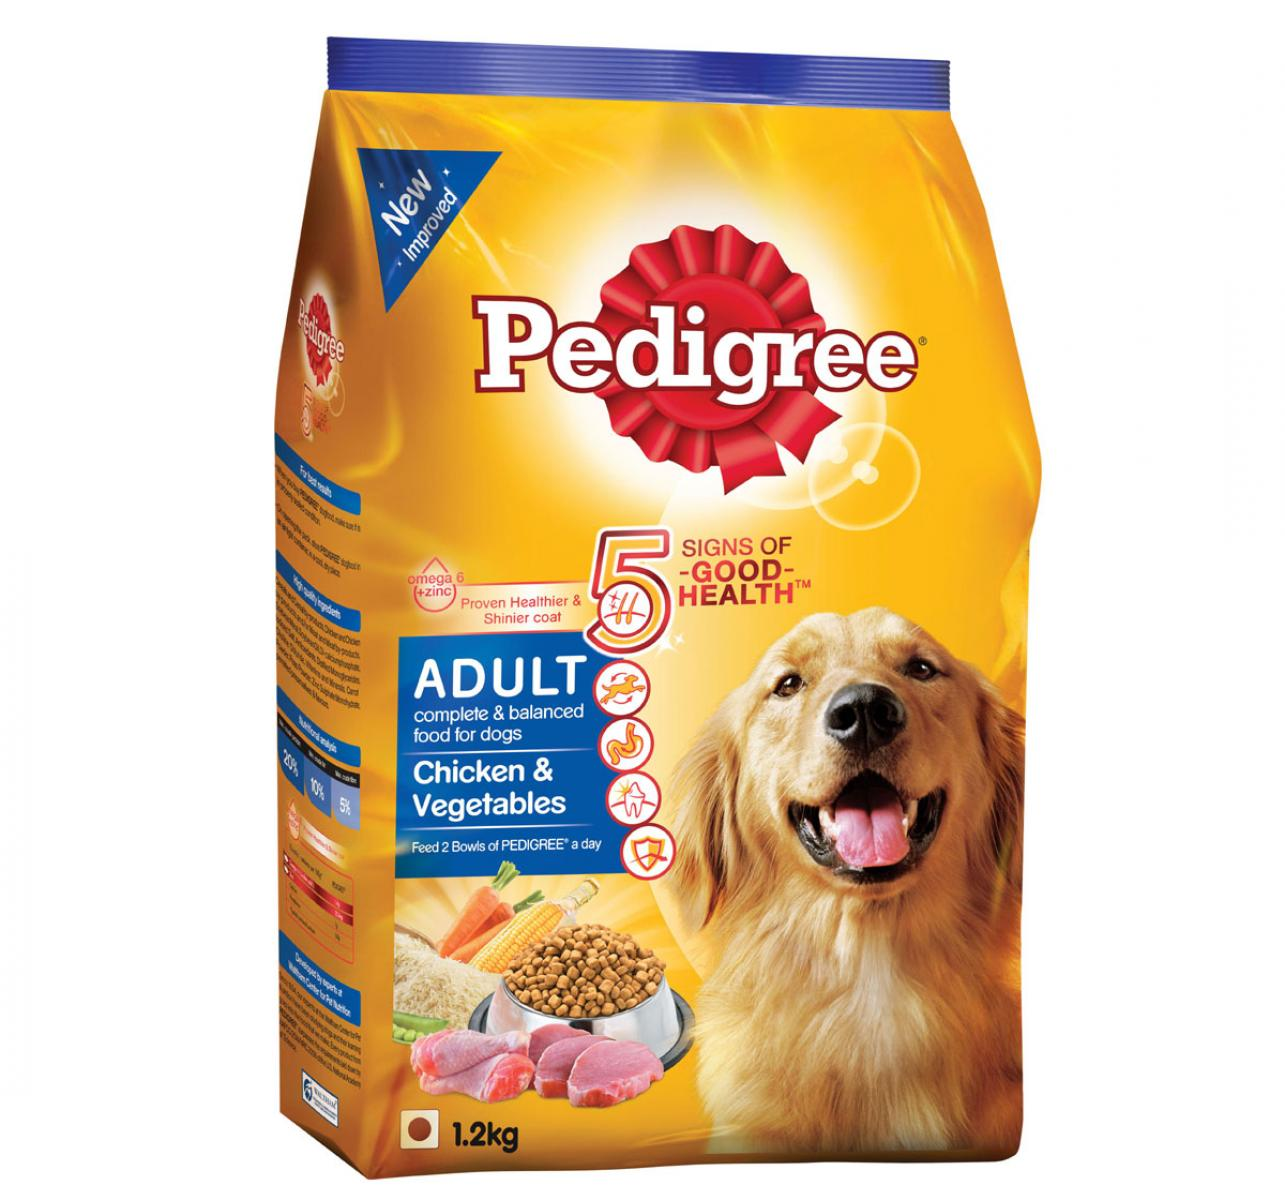 Pedigree Adult Dog Food Chicken & Vegetables - 1.2 Kg